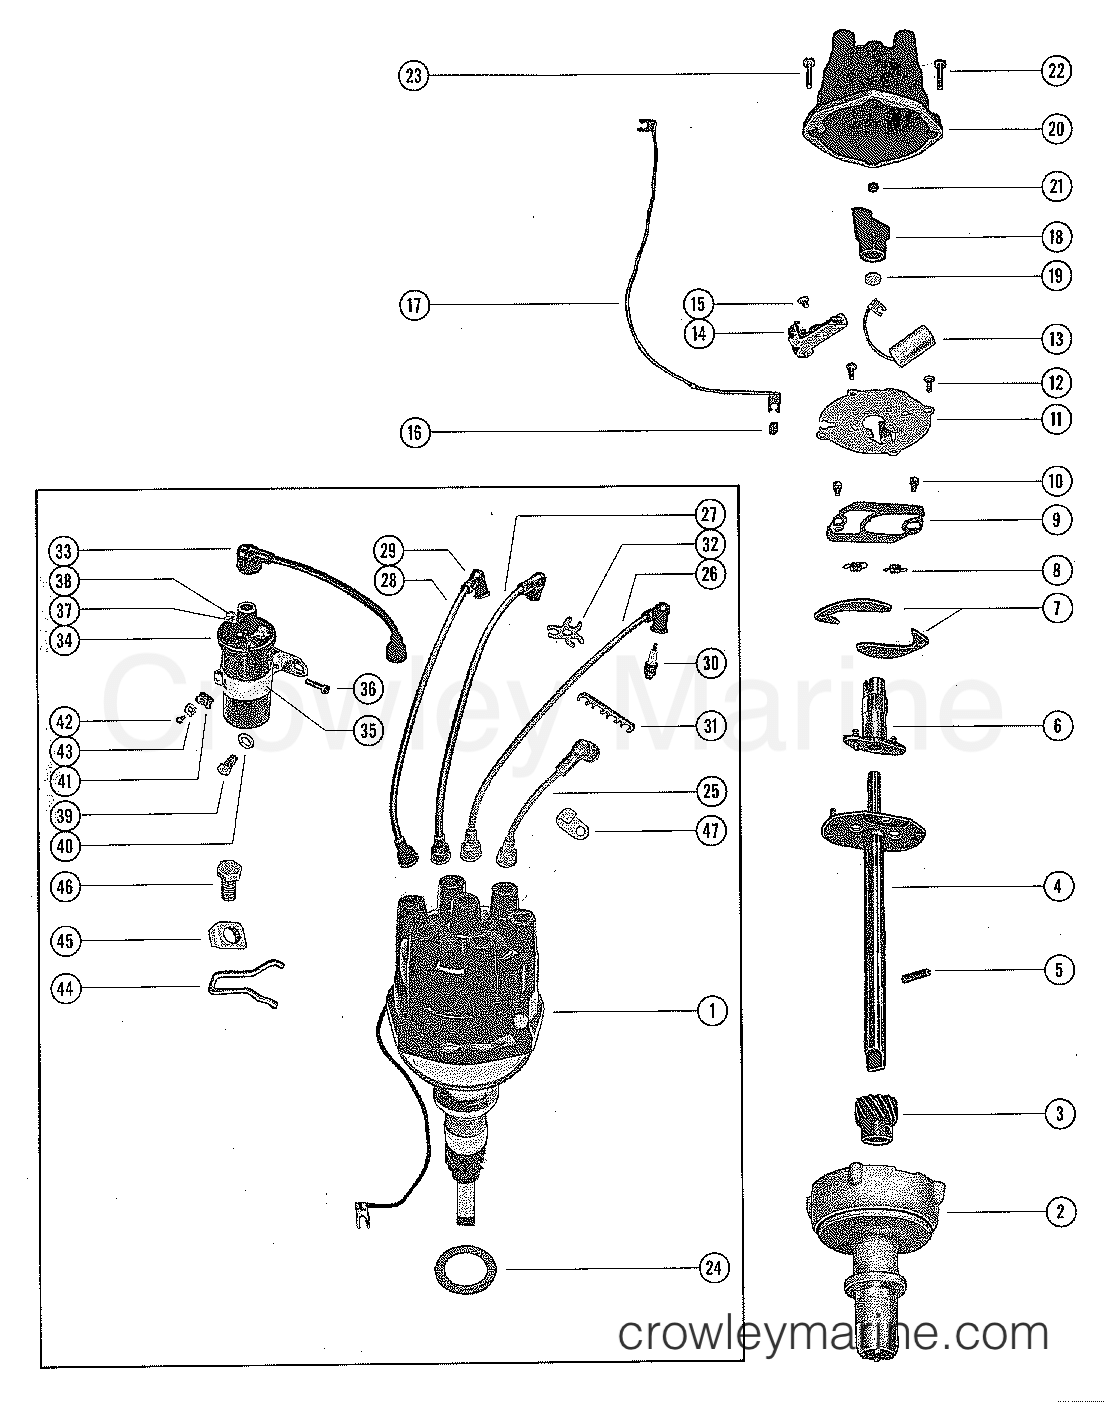 140 mercruiser wiring diagram distributor assembly and coil serial range mercruiser 140 gm 194  serial range mercruiser 140 gm